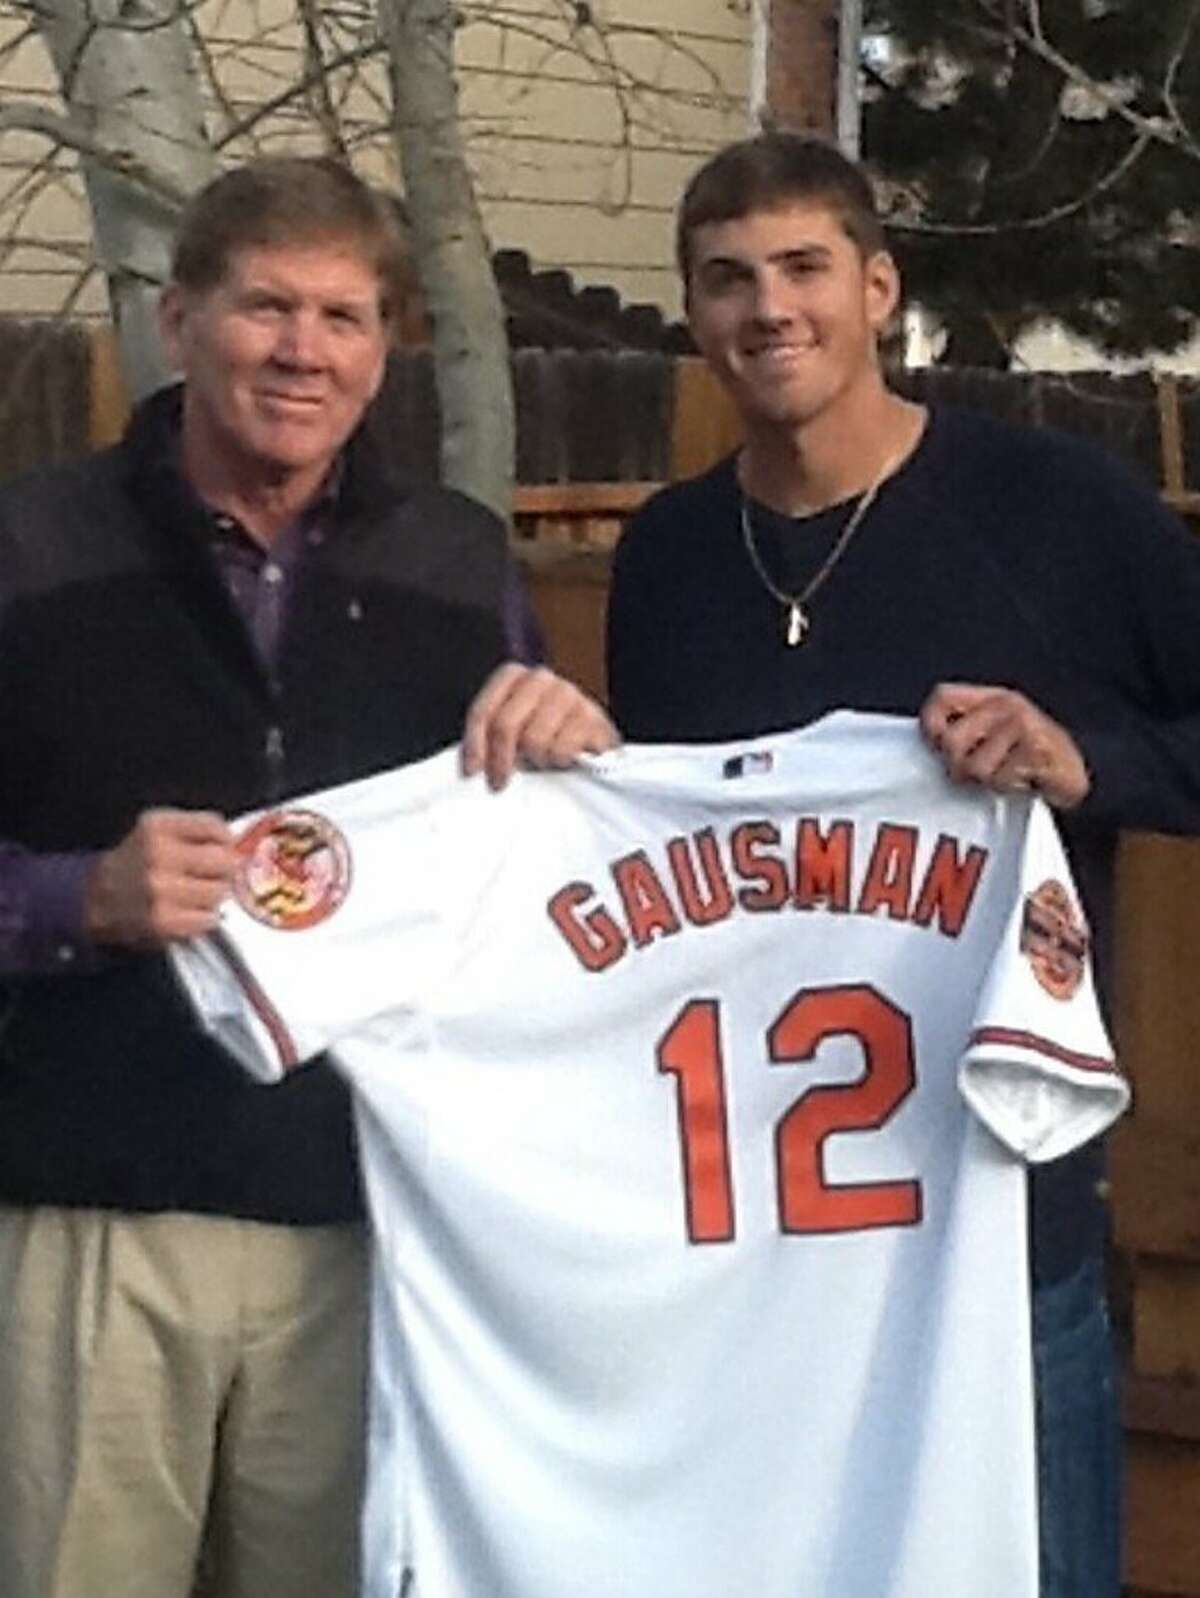 Clair Gausman, a college football replay official, flew to Seattle to watch his son Kevin pitch.